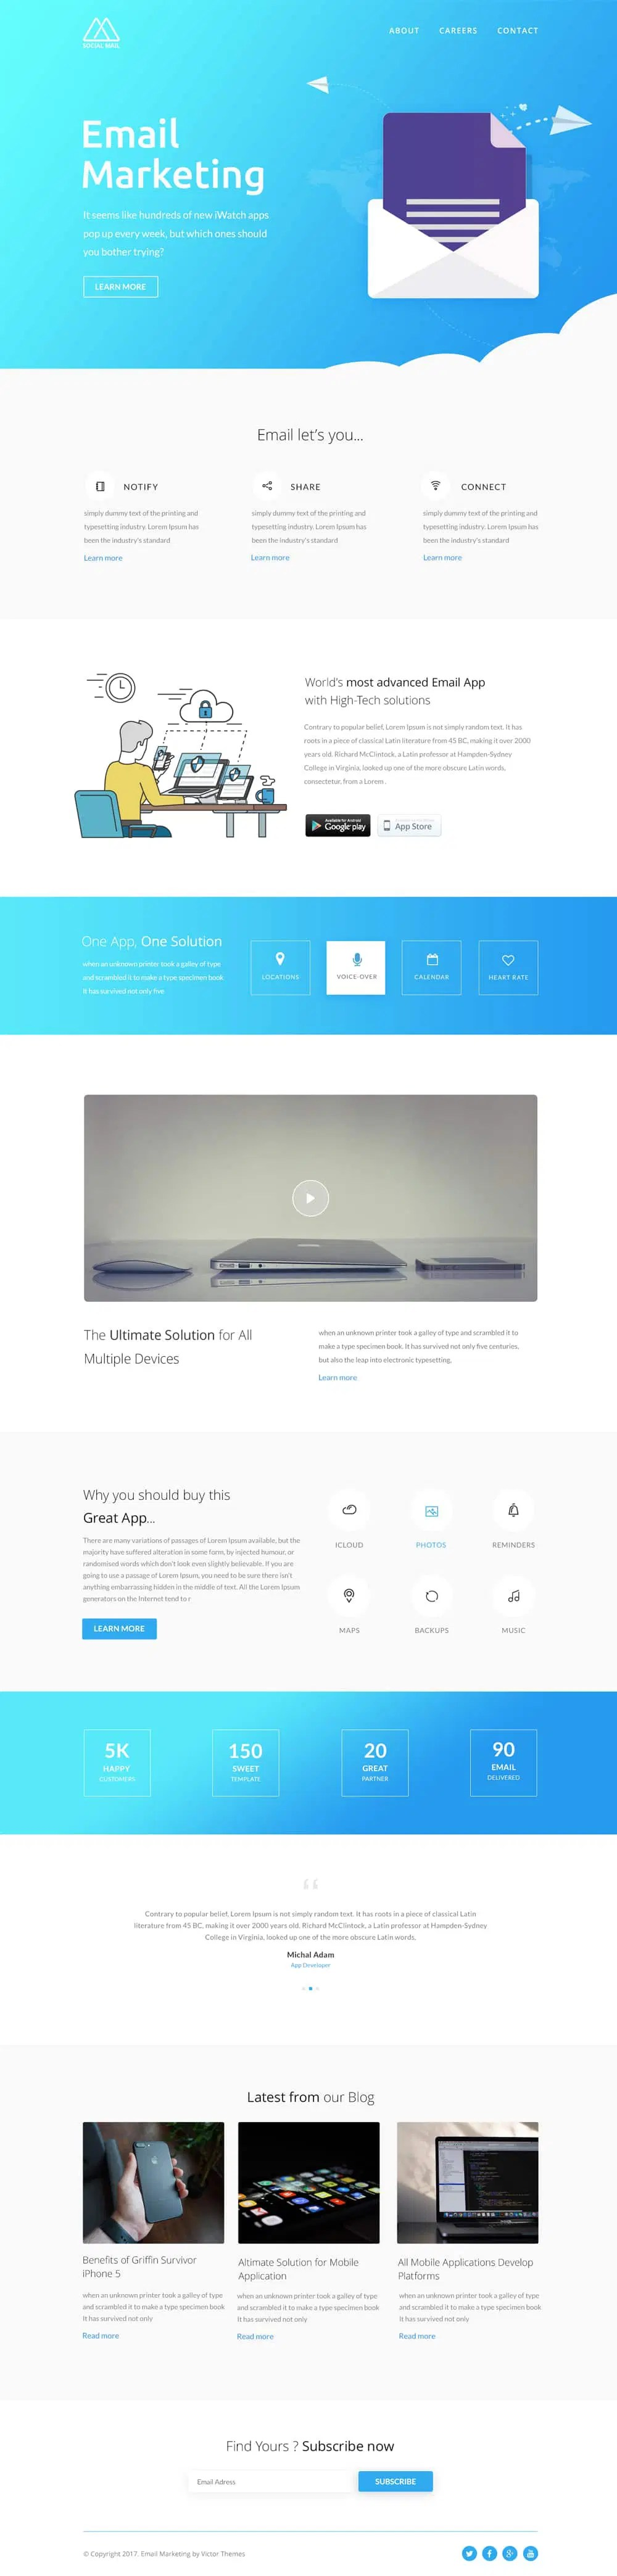 Free and premium plans cu. Free Email Newsletter Templates Psd Css Author